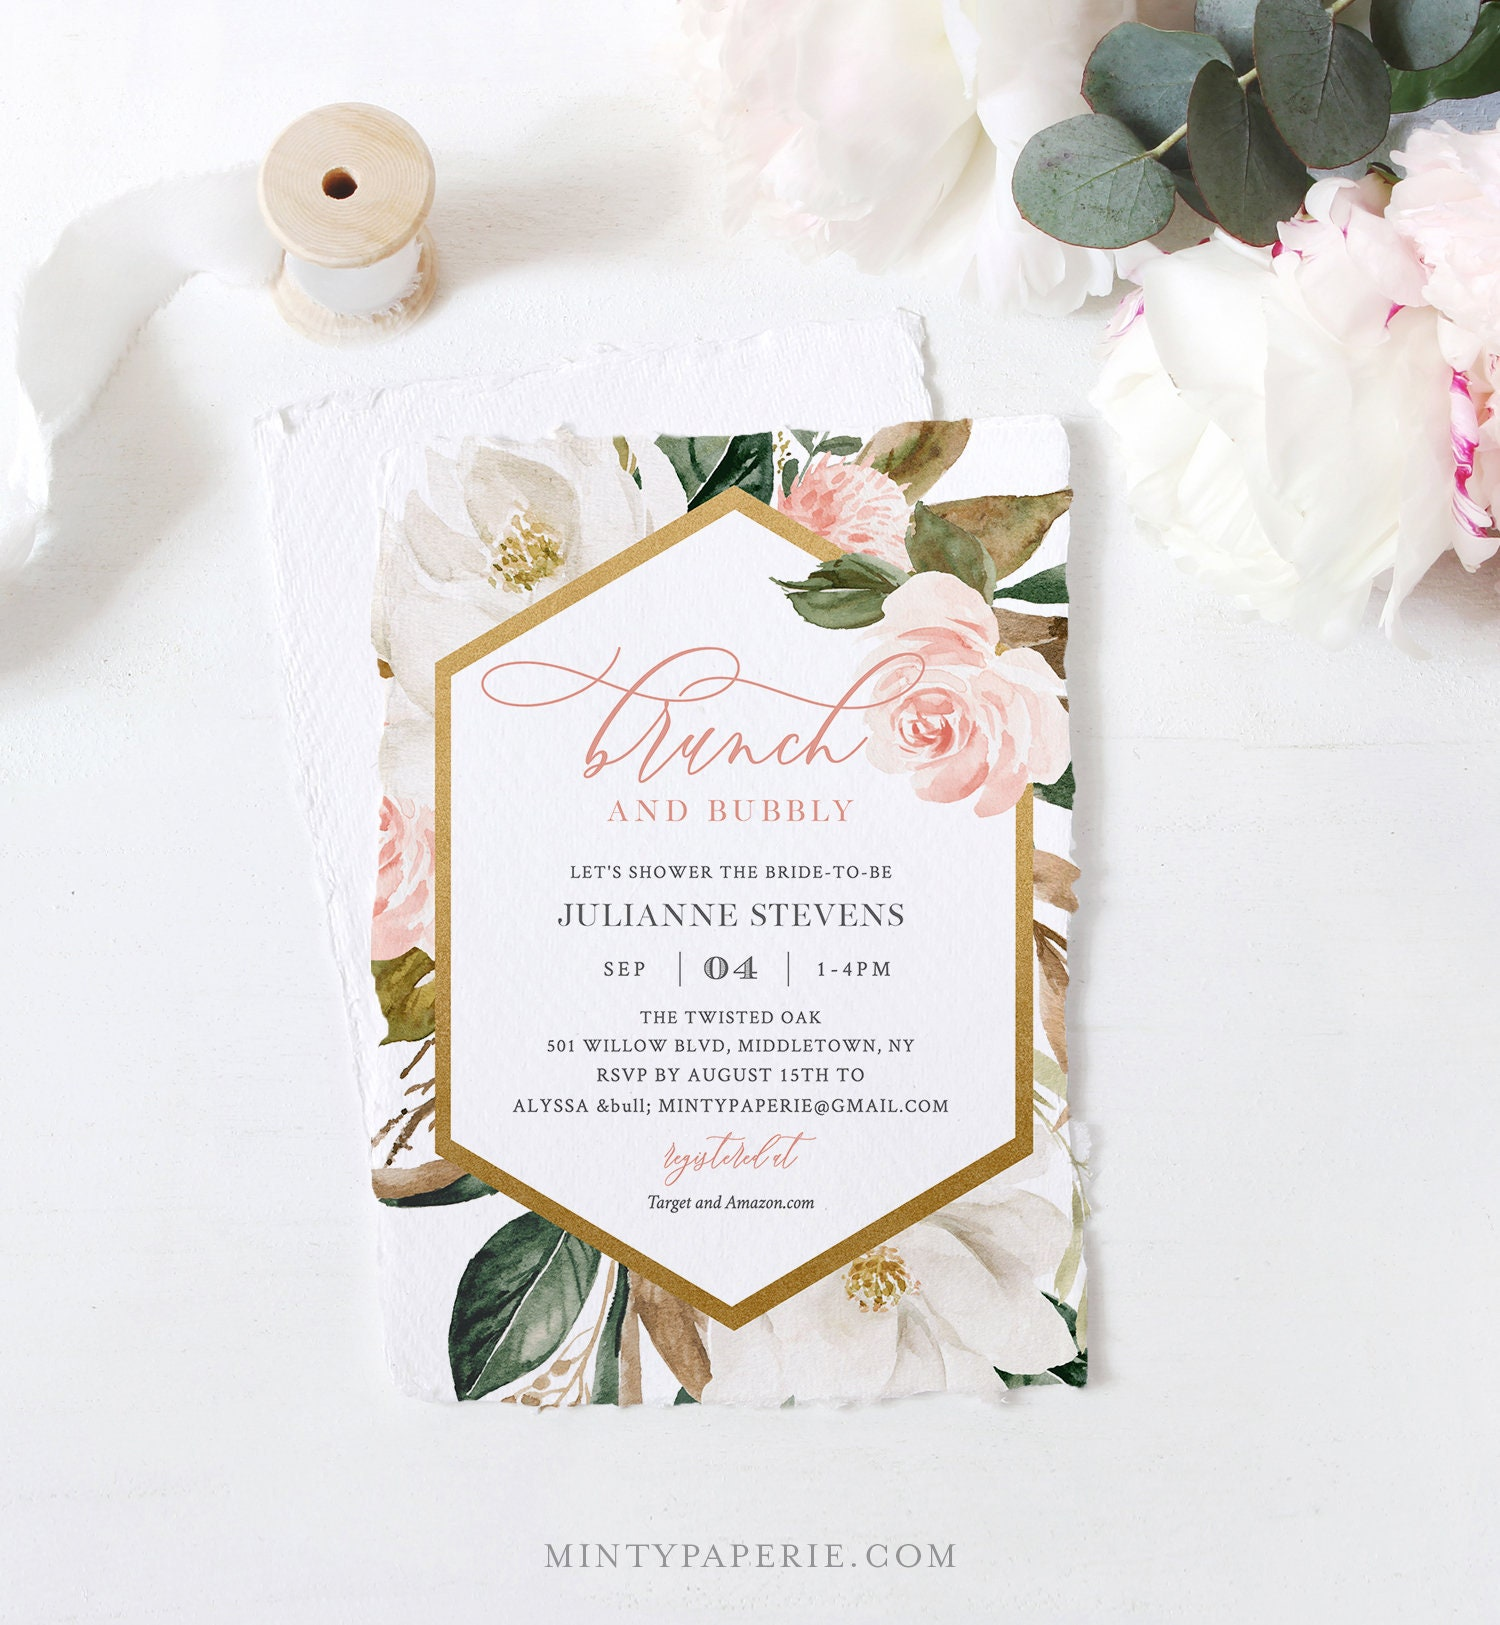 Bridal Shower Invitation Template Brunch And Bubbly Printable